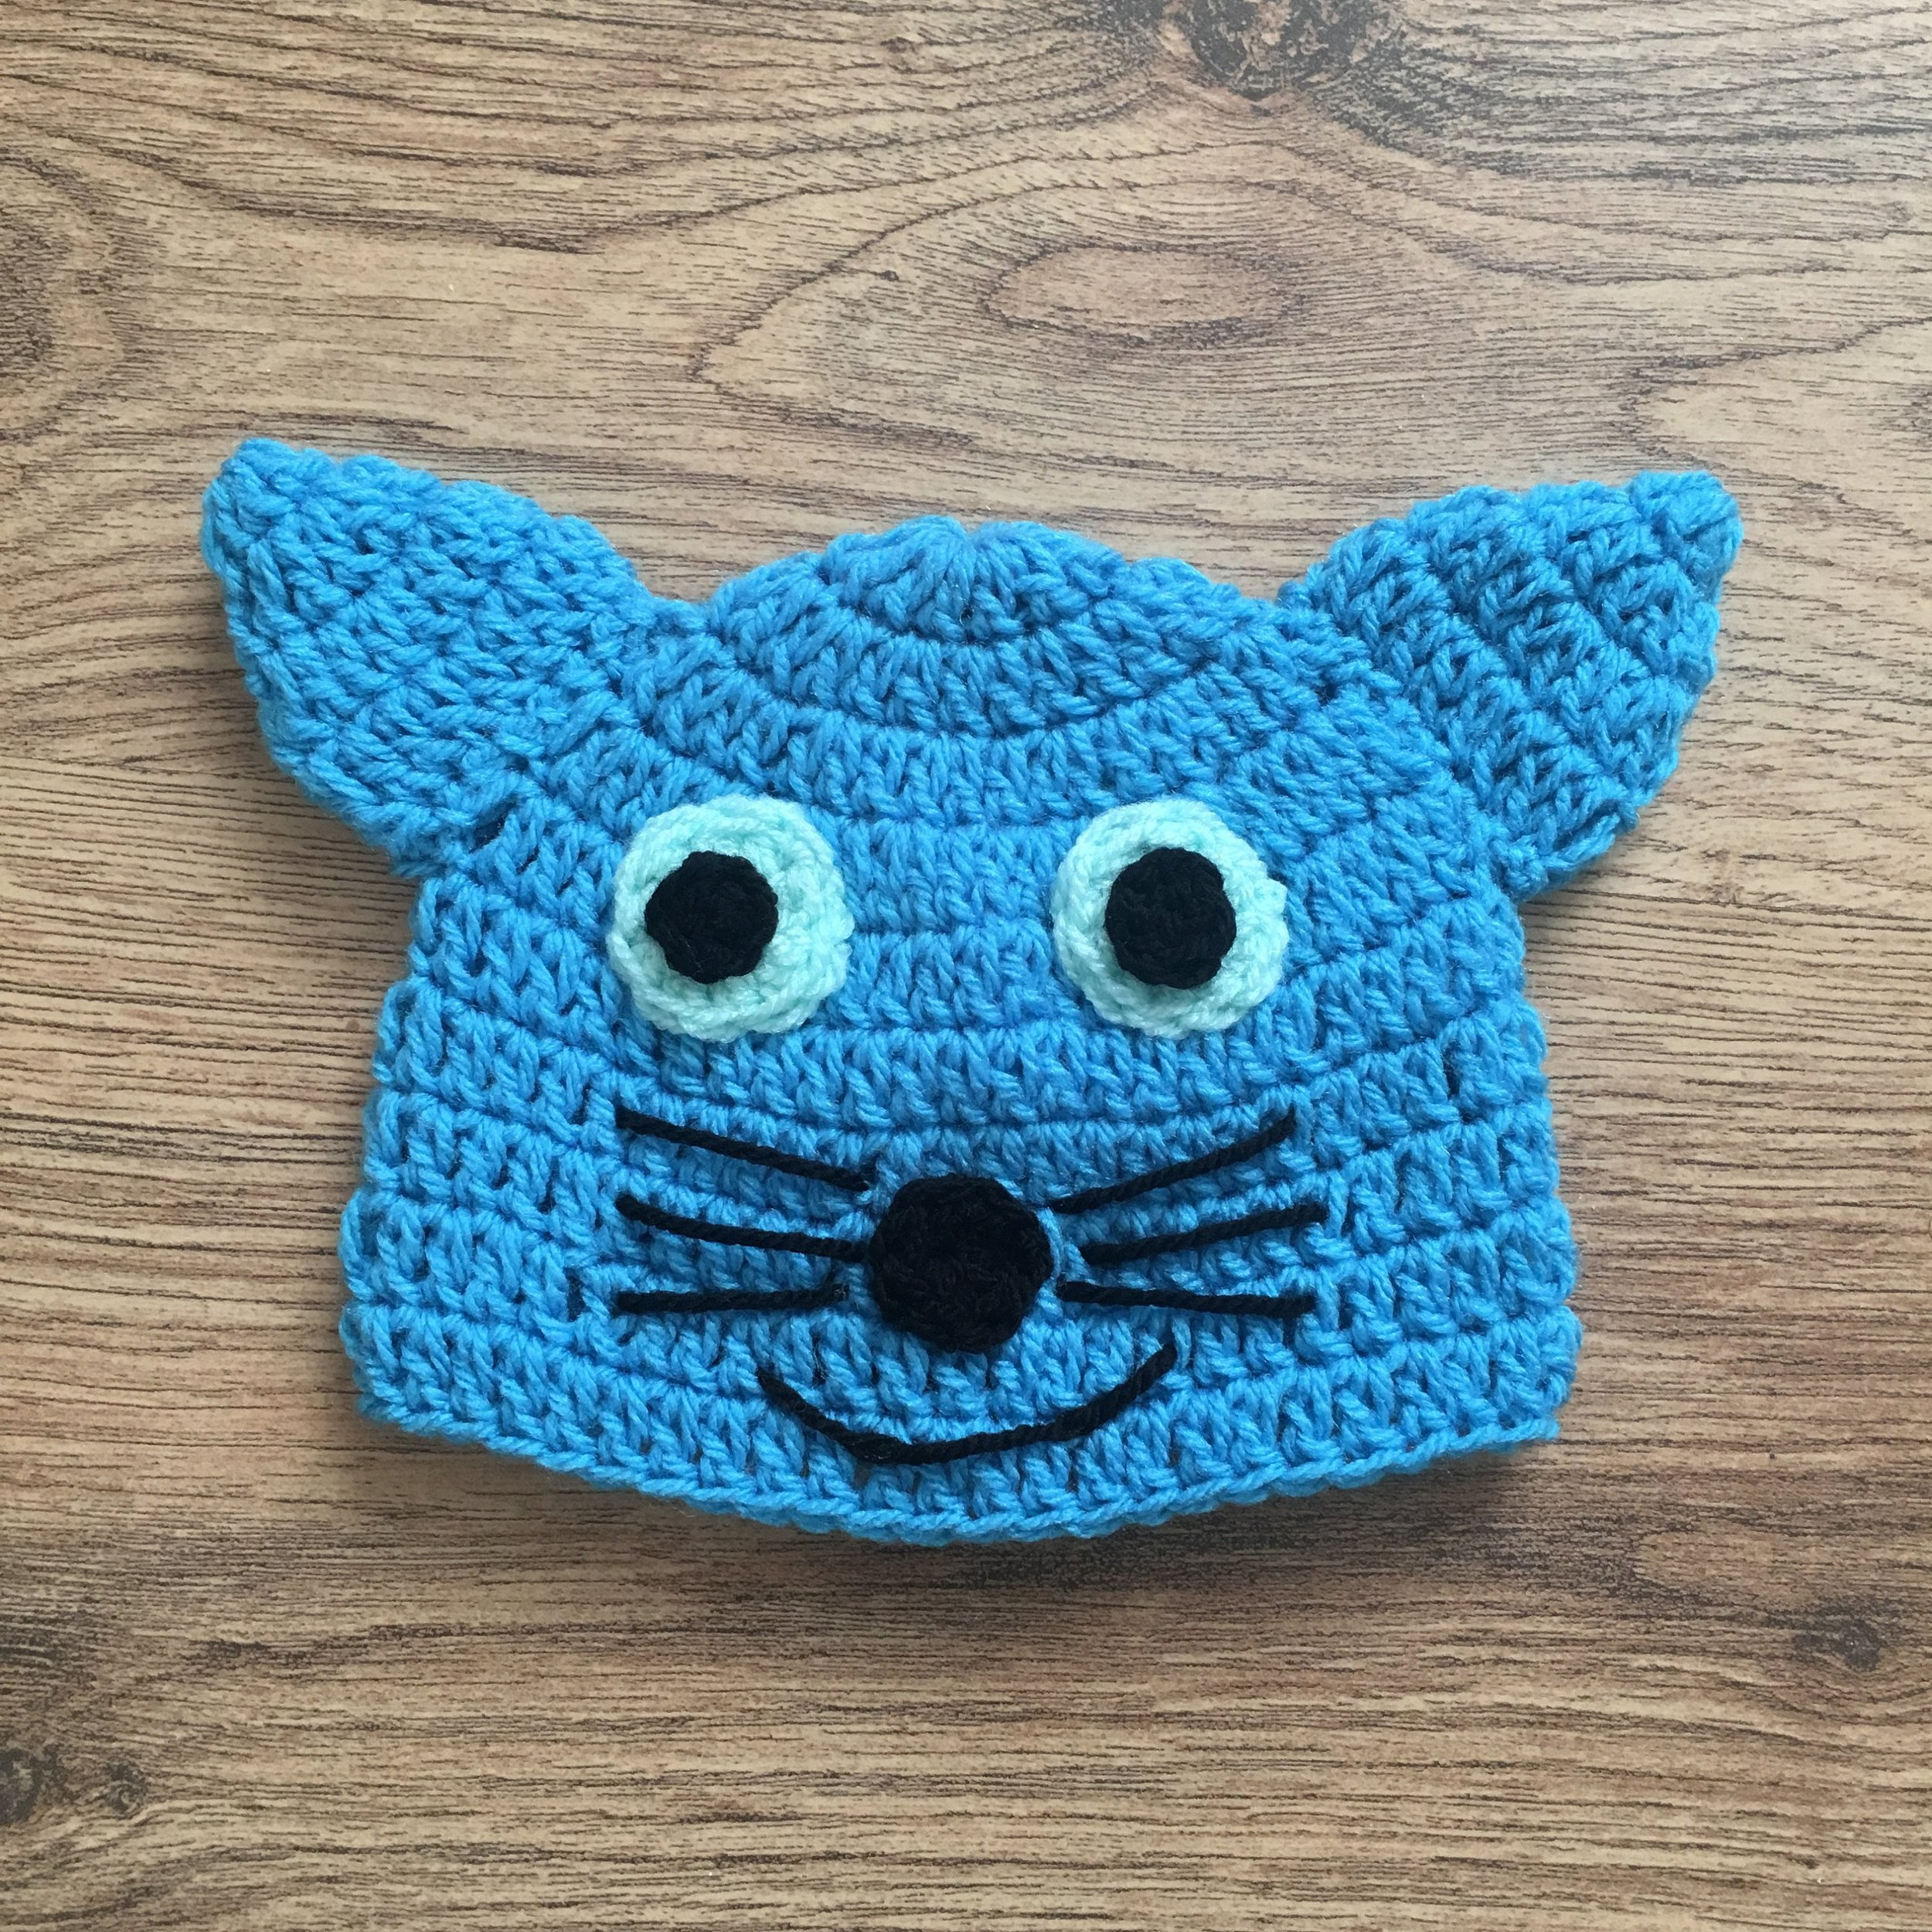 Yay for Crochet — Festiwool - a growing resource for all